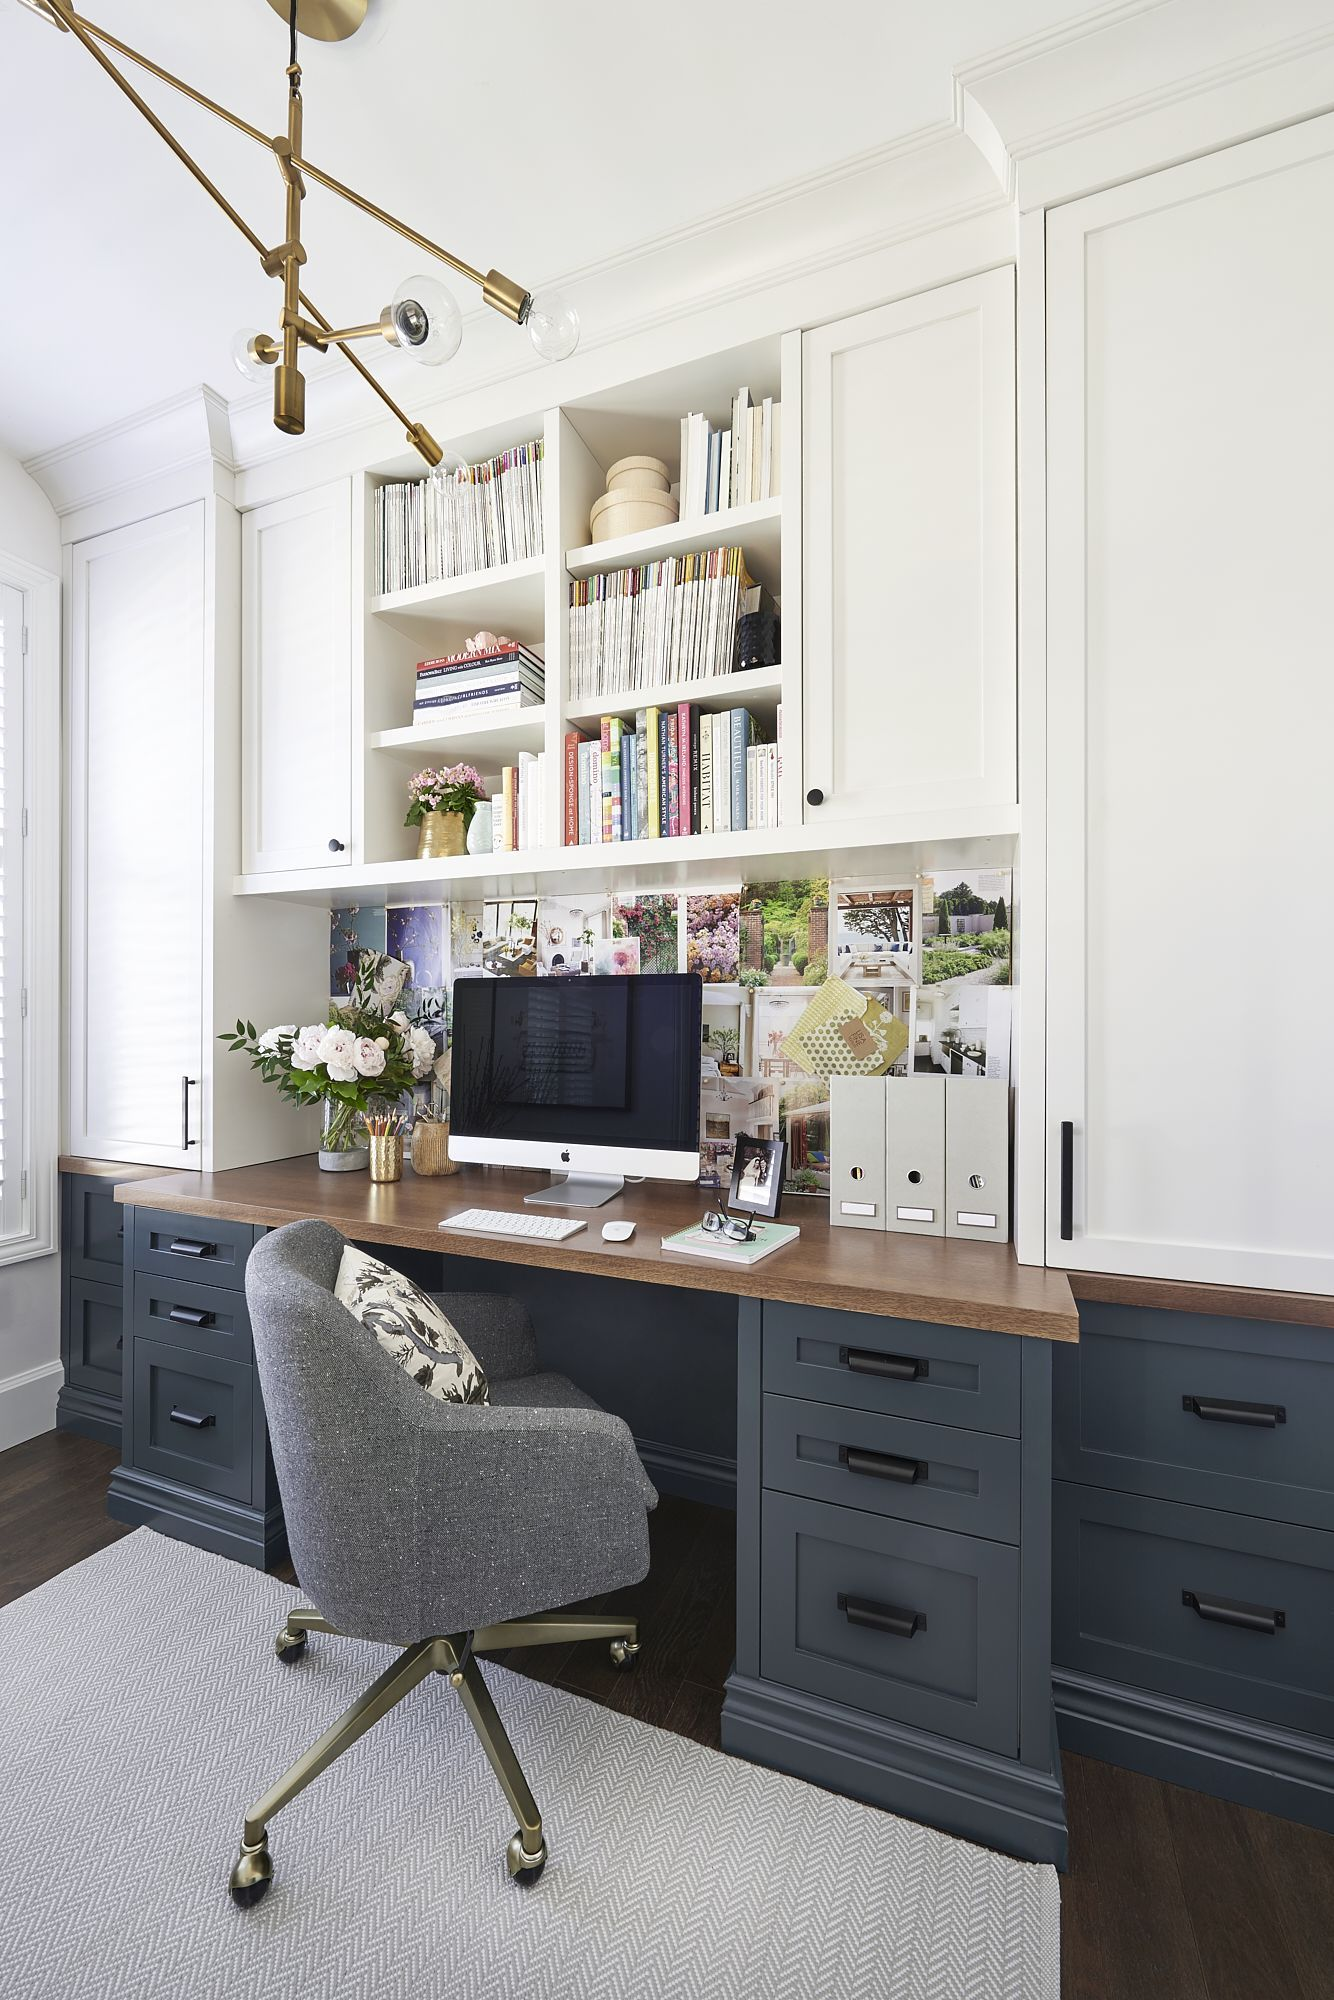 Whether You Work From Home Or Have Carved Out A Space For